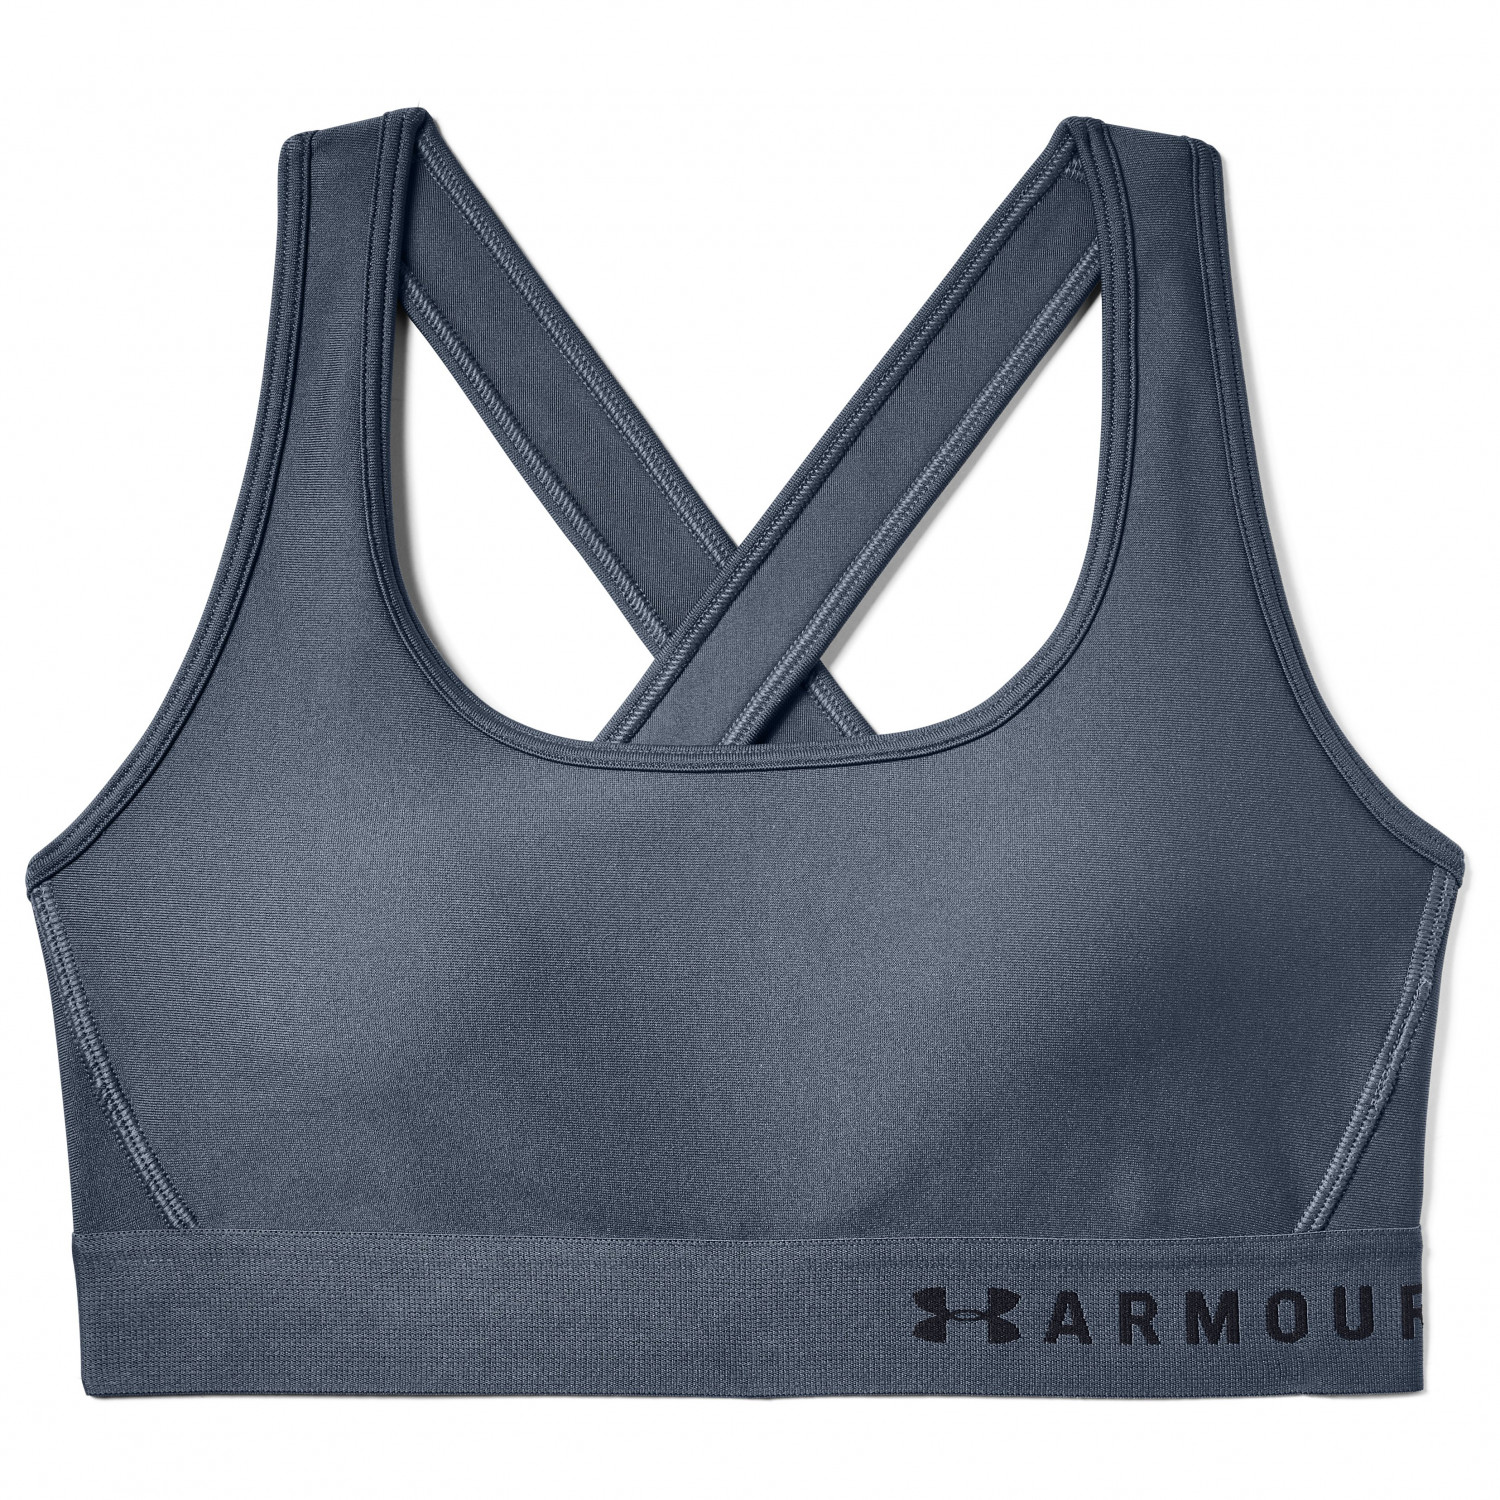 cab14e6d434 ... Sports bra · Under Armour - Women s Armour Mid Crossback - Sports ...